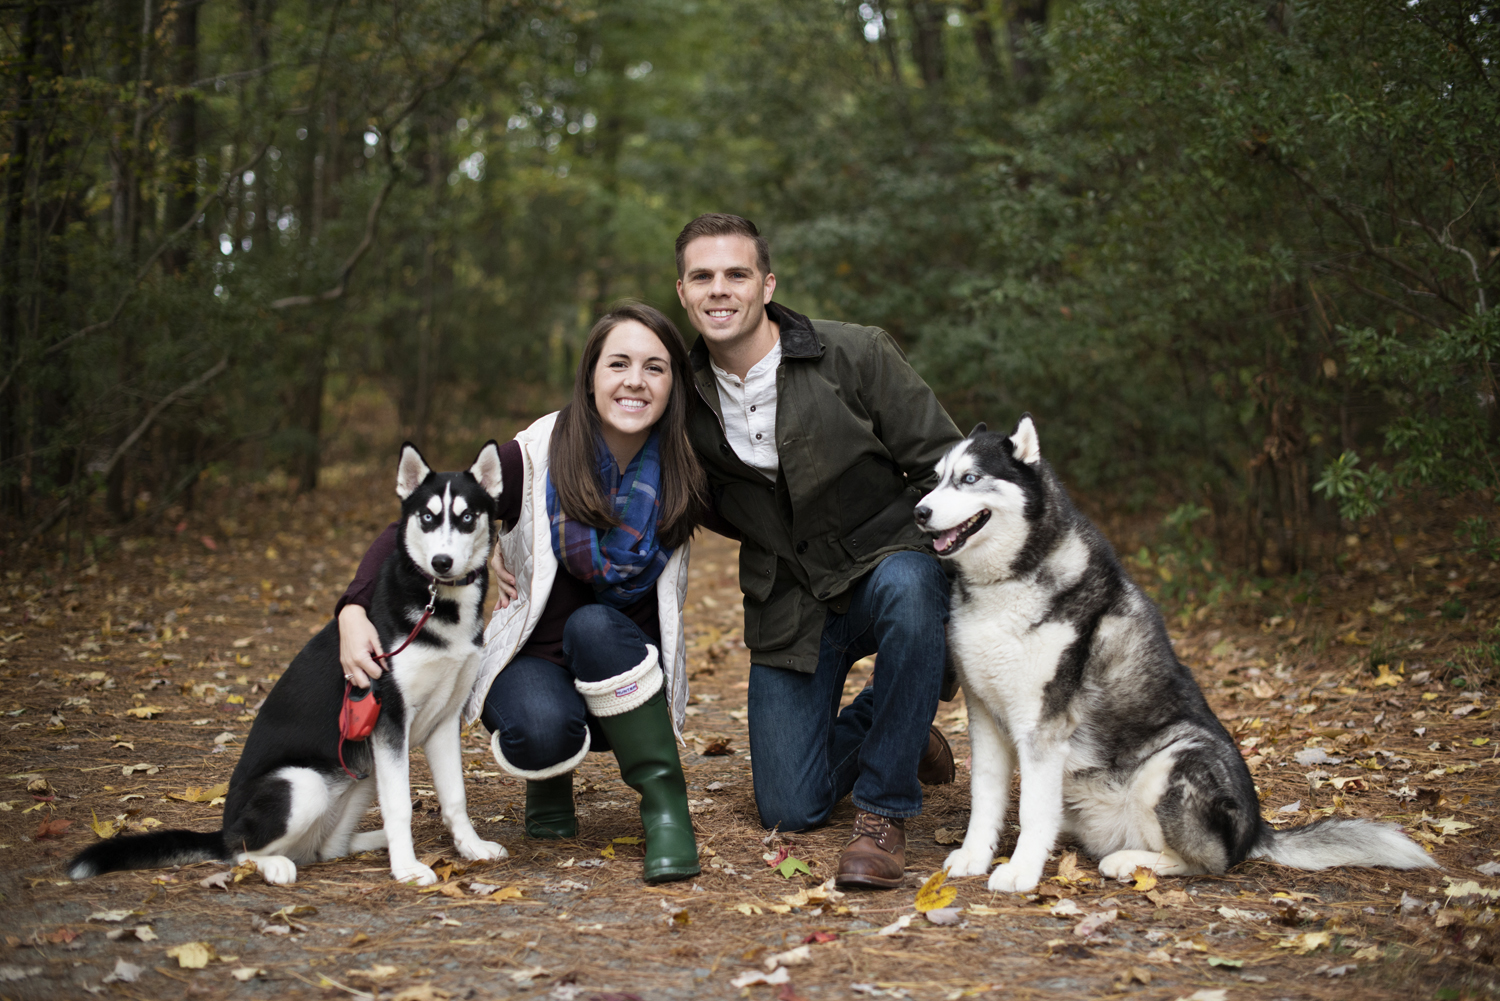 Christmas card pictures with husky rescue dogs